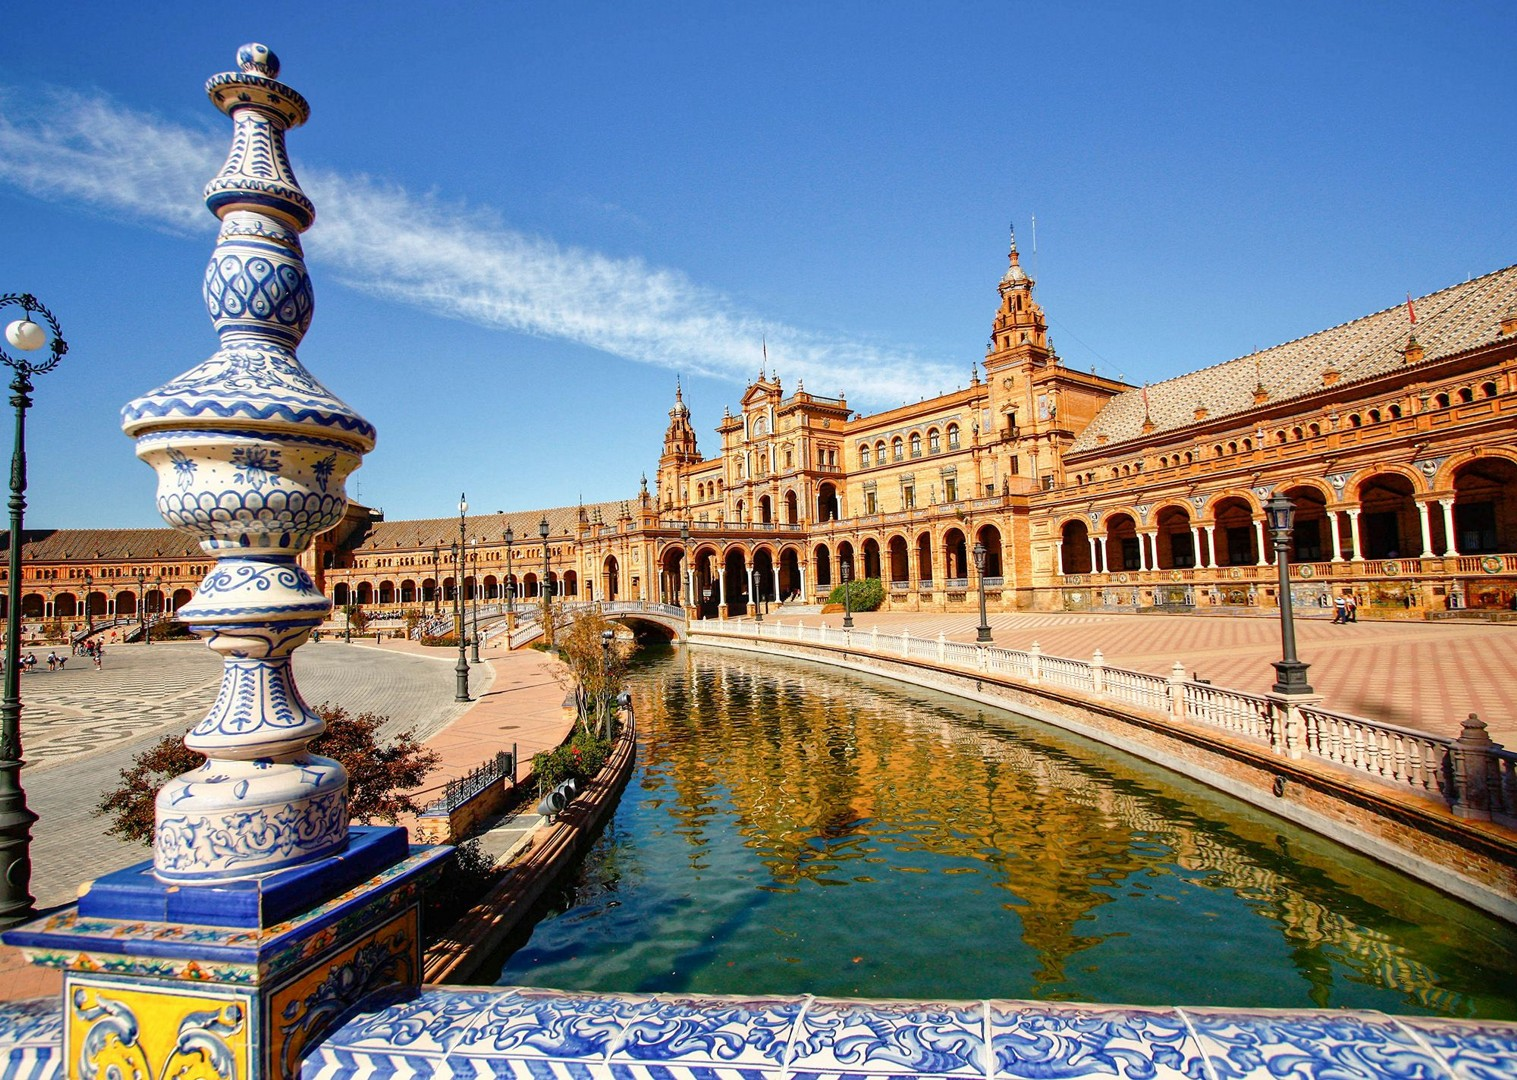 seville-southern-spain-granada-to-seville-guided-leisure-cycling-holiday.jpg - Southern Spain - Granada to Seville - Guided Leisure Cycling Holiday - Leisure Cycling